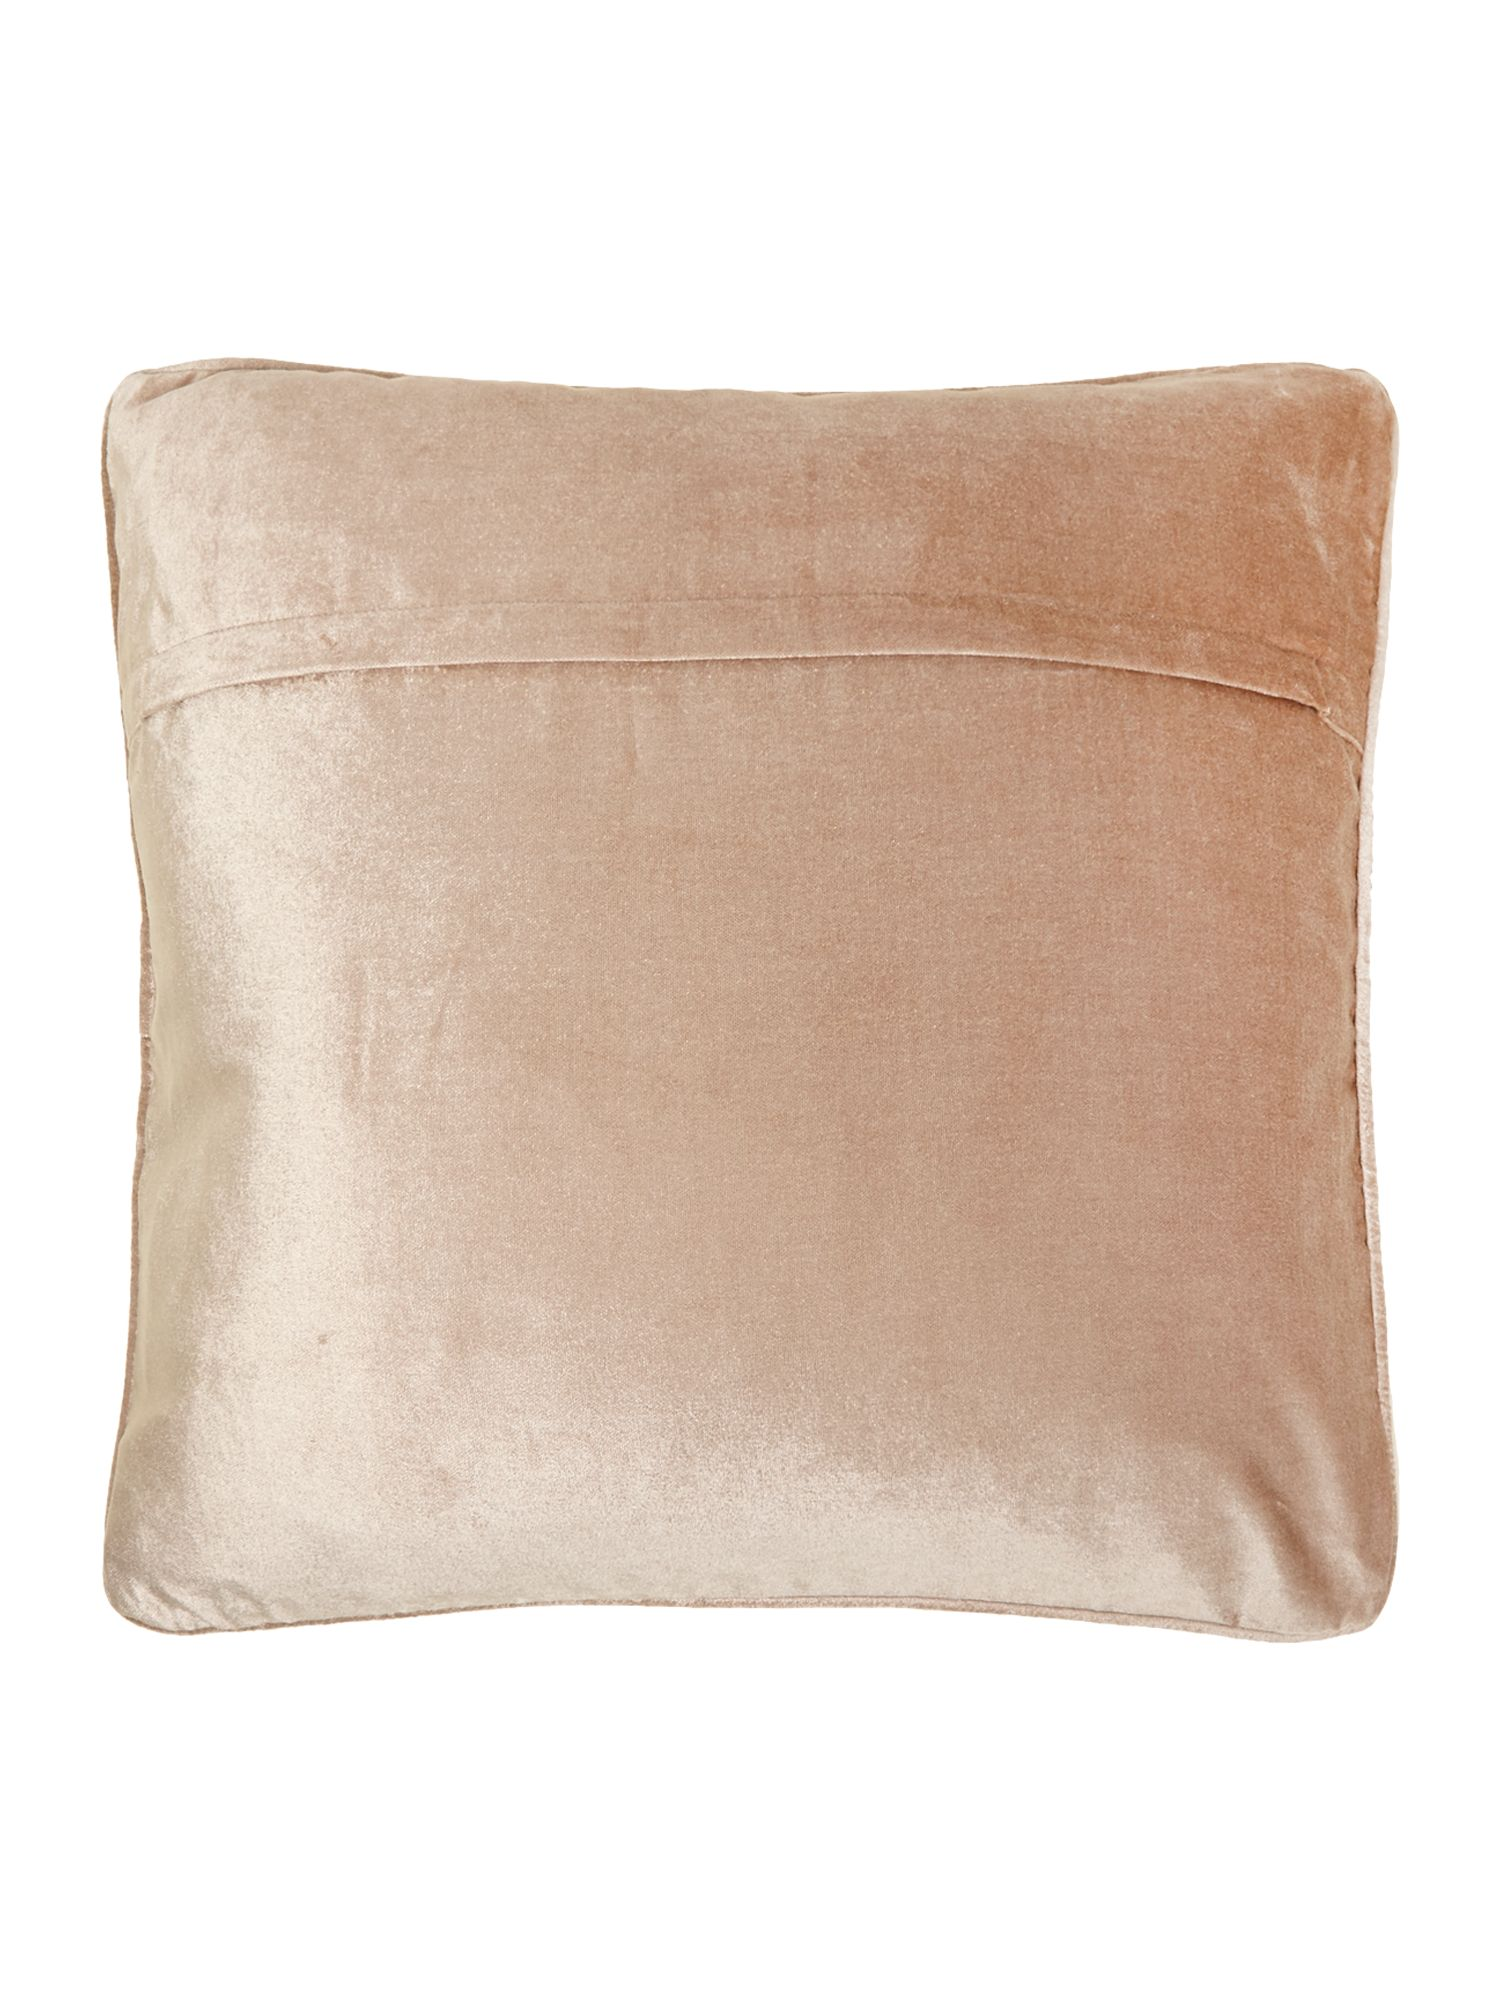 Oversized velvet cushion, Latte